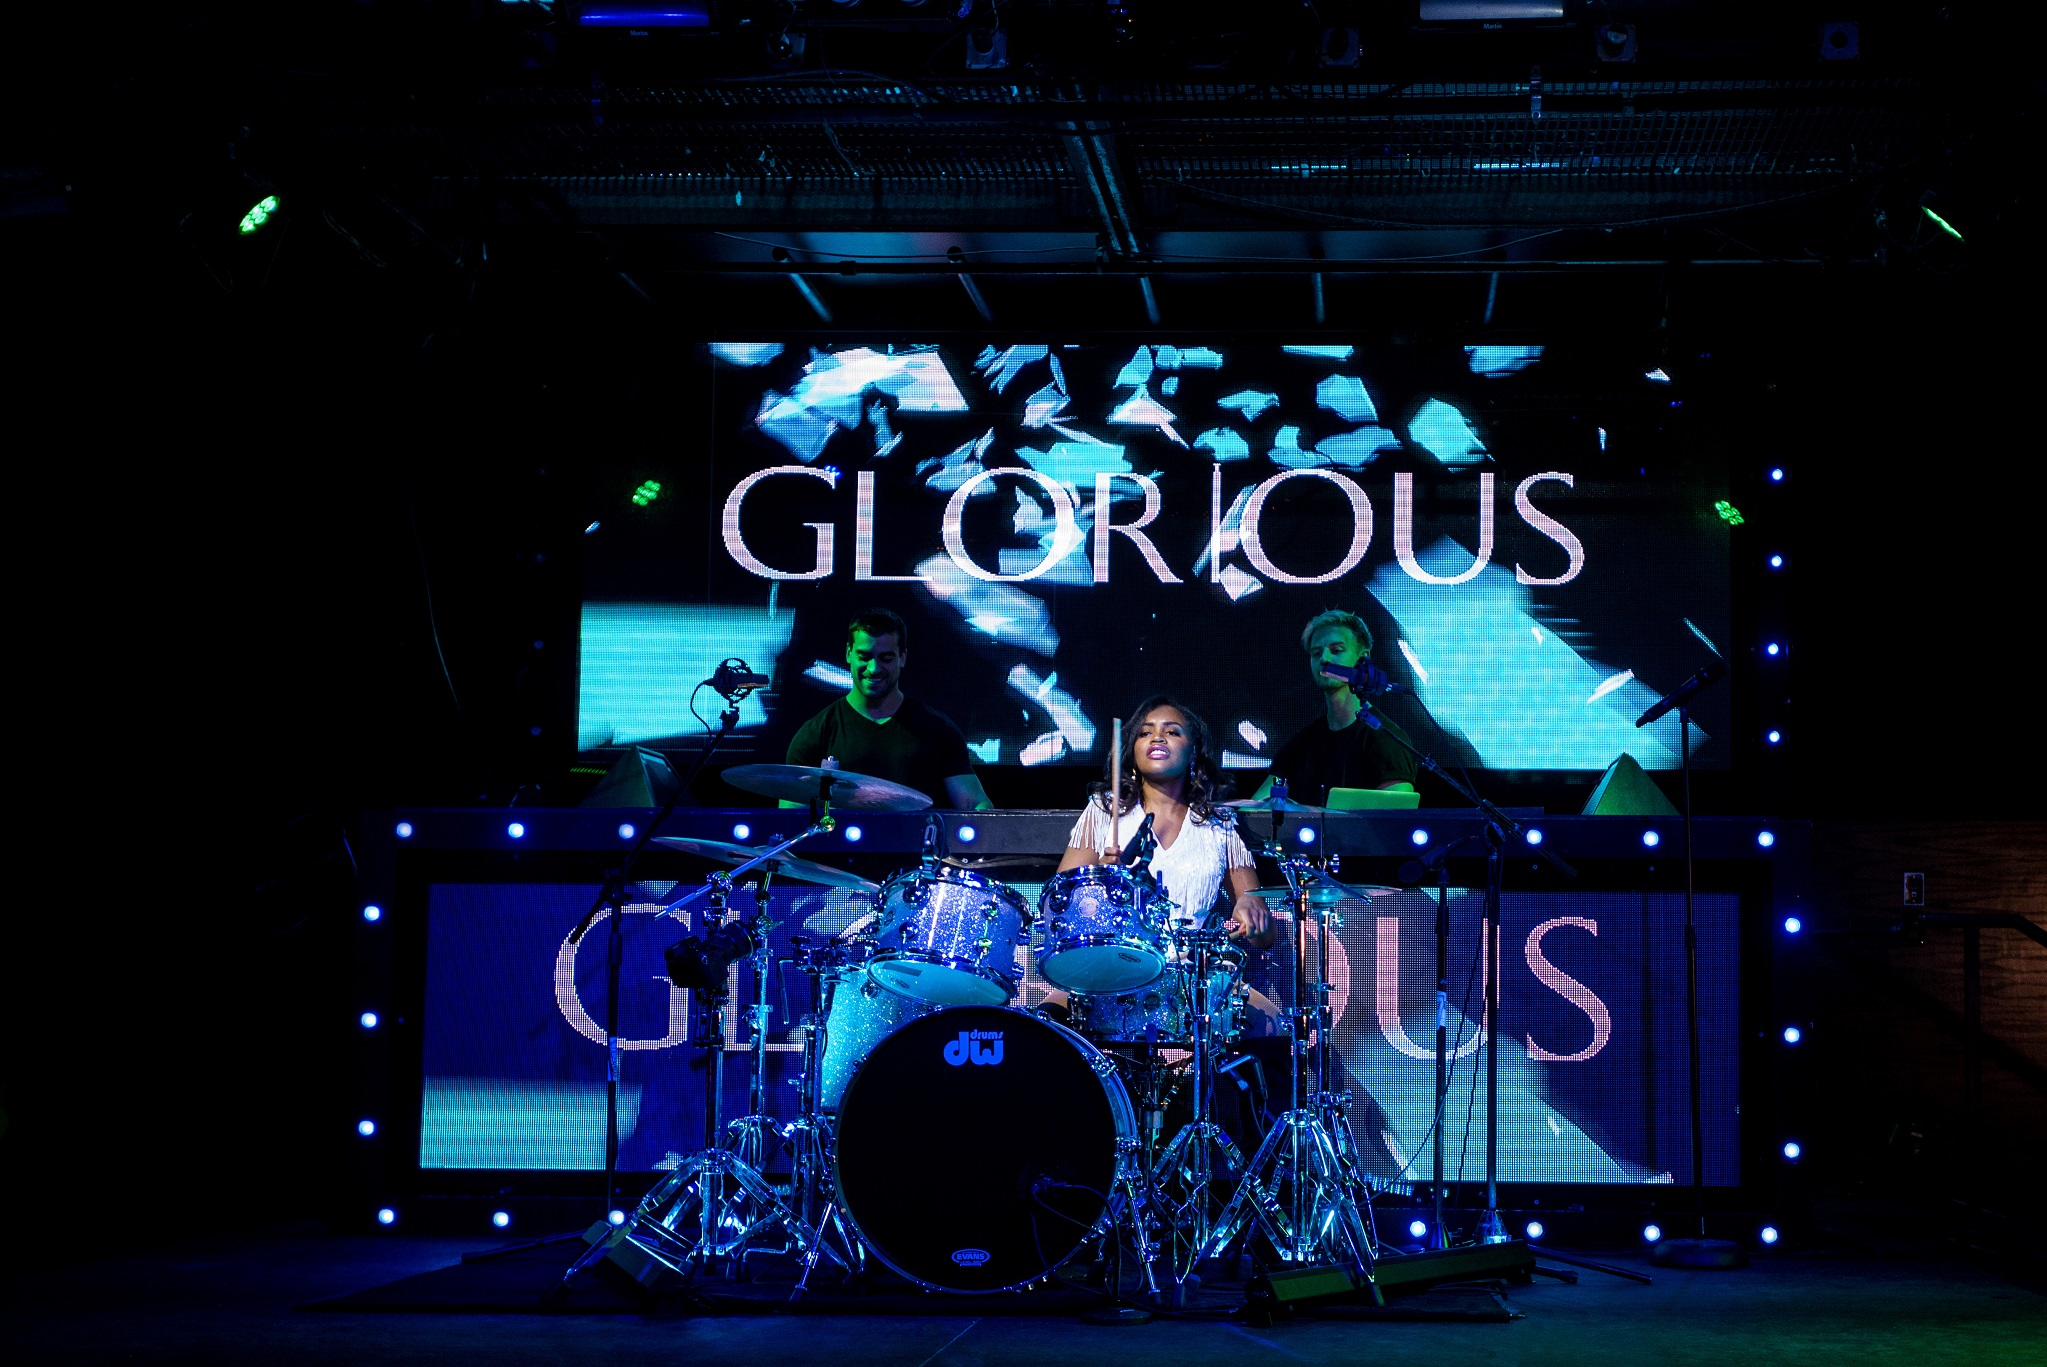 Glorious-Singer-Livetronica Drummer-Producer-Songwriter-Marquee-Nightclub-Video-New York-NY-38lr.jpg